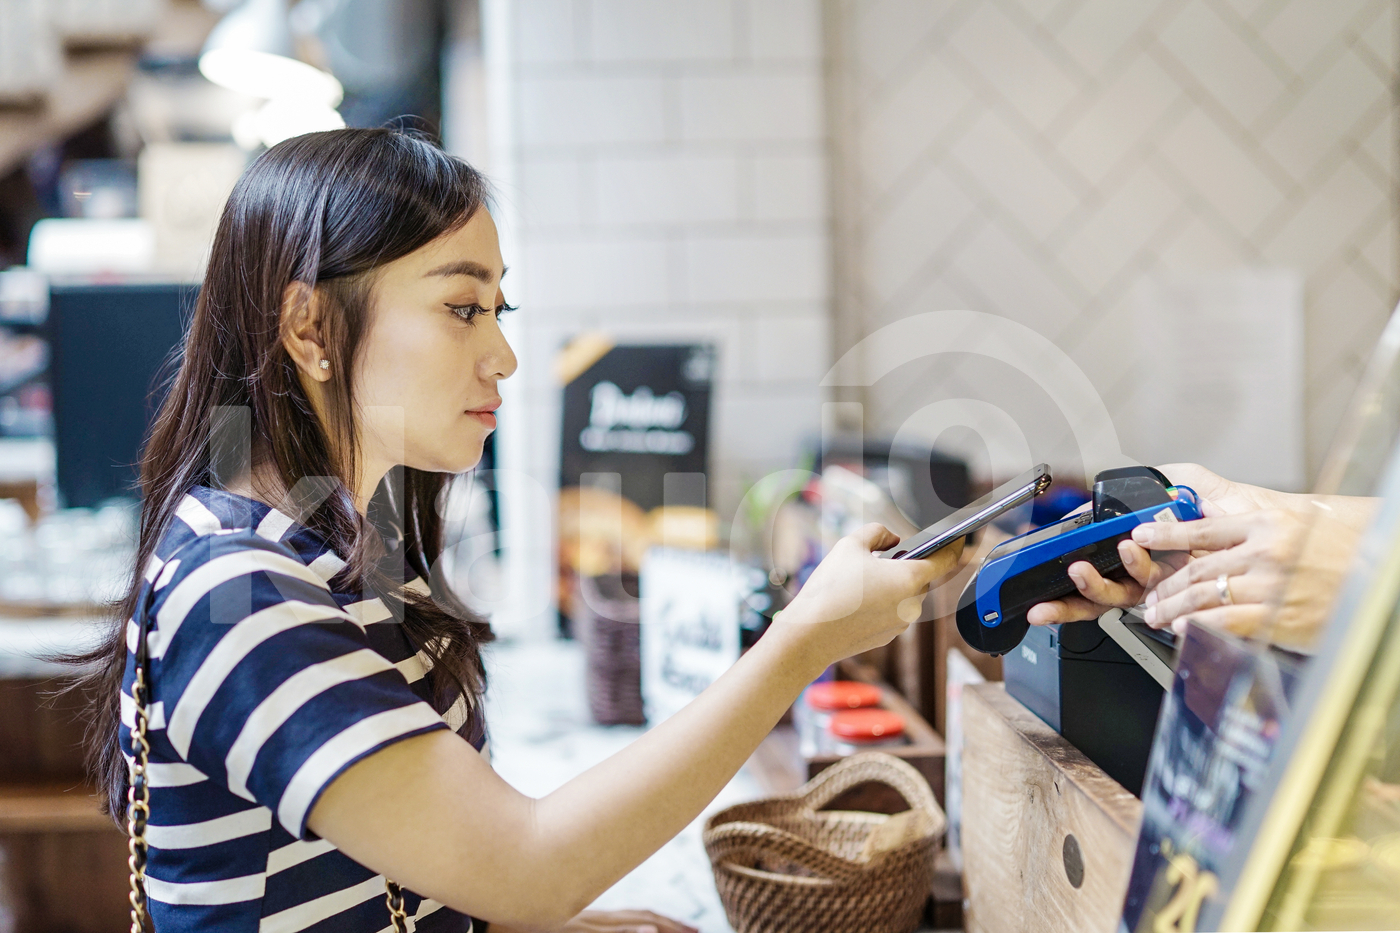 Asian woman with smartphone using contactless payment at restaurant